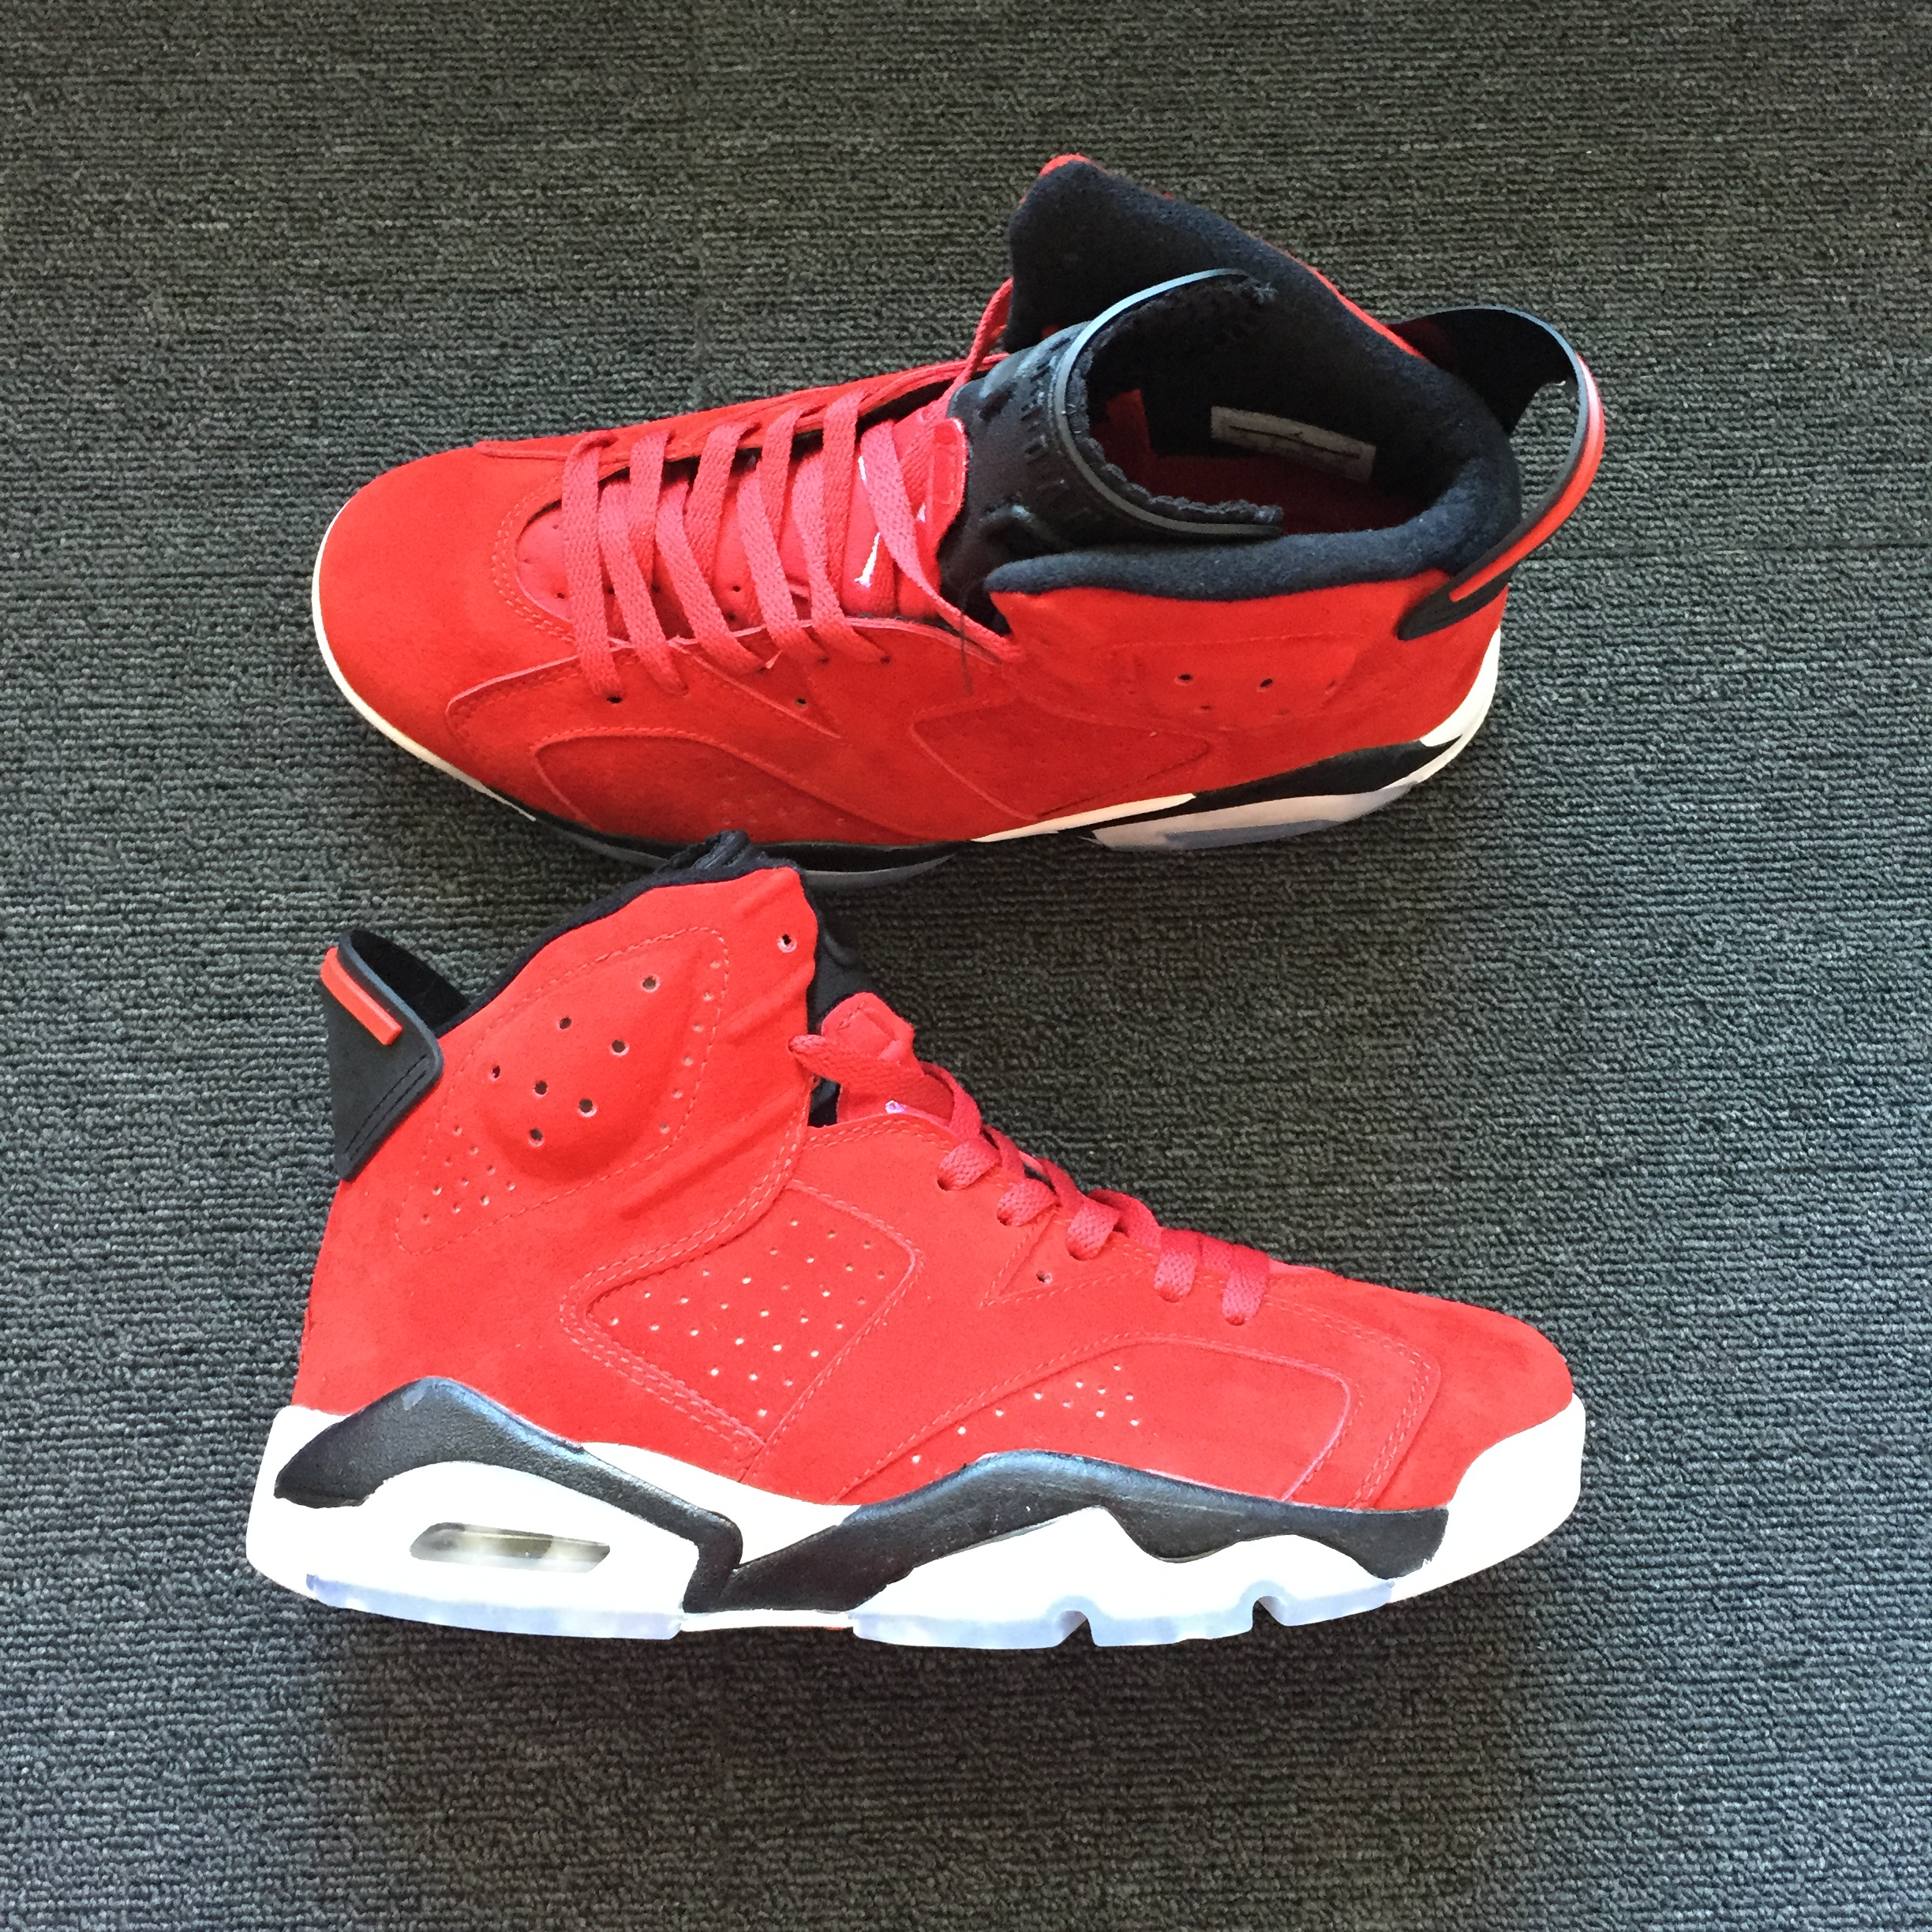 Men Air Jordan 6 Deer Skin Red Black Shoes